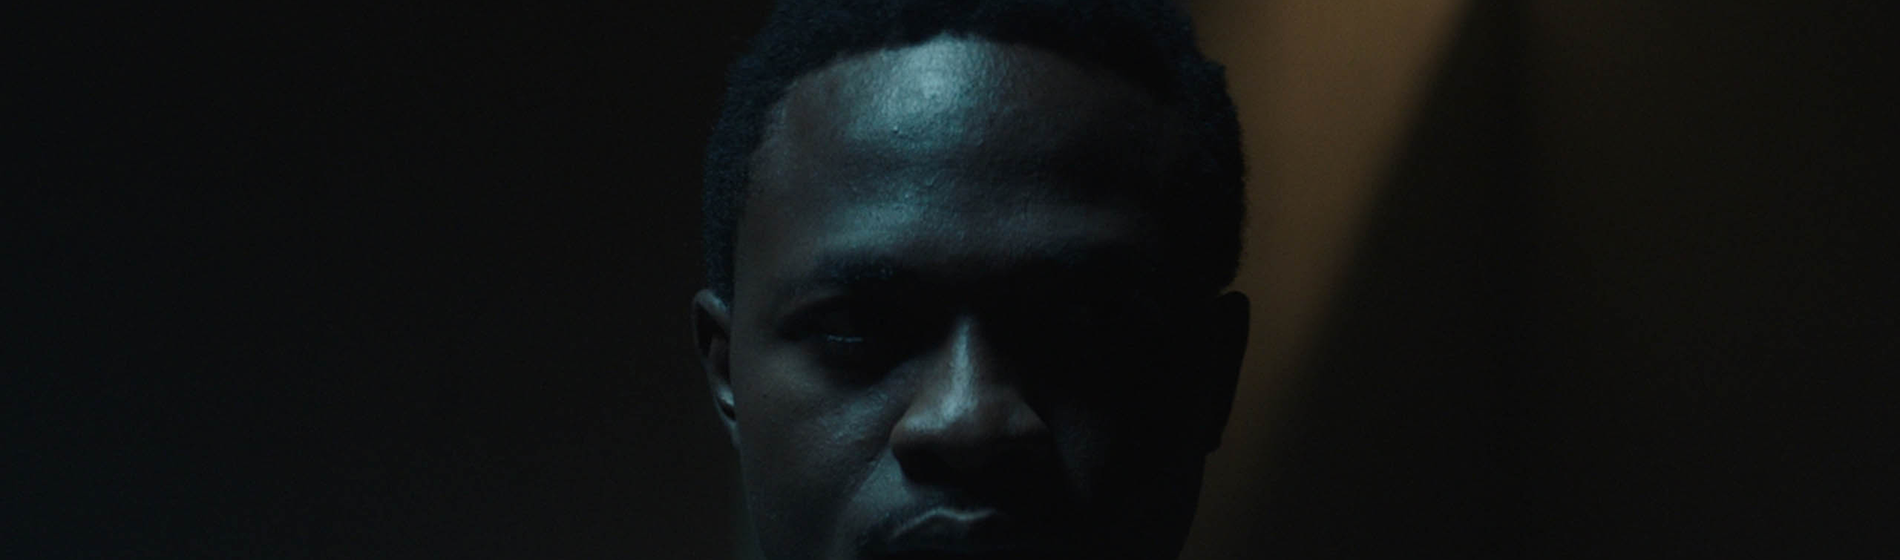 A still from Black Bodies